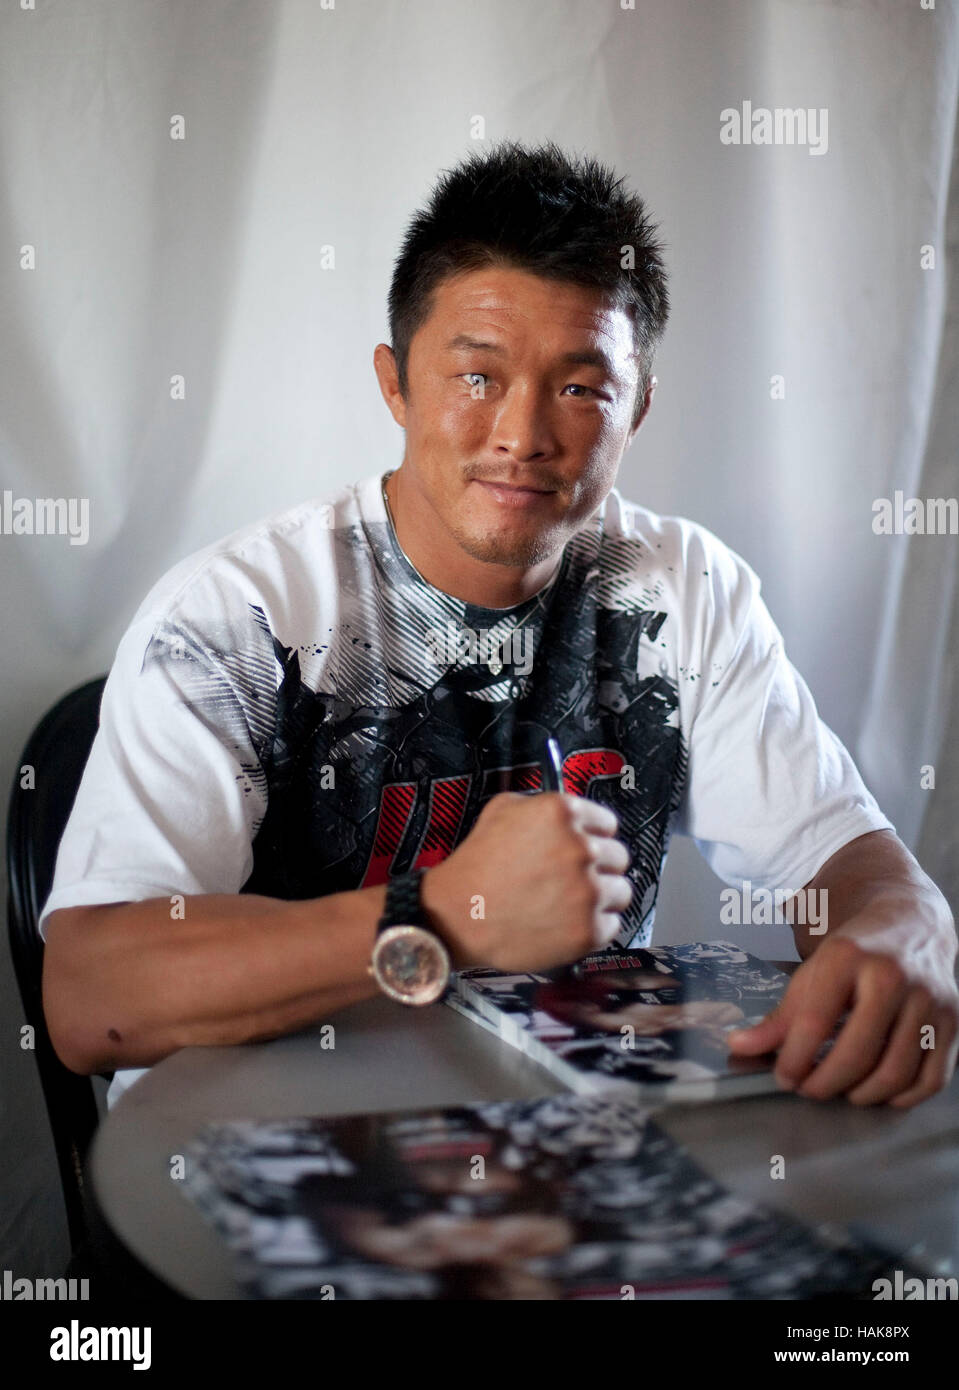 UFC fighter Yoshihiro Akiyama in Los Angeles, California on October 23, 2009. Photo by Francis Specker - Stock Image